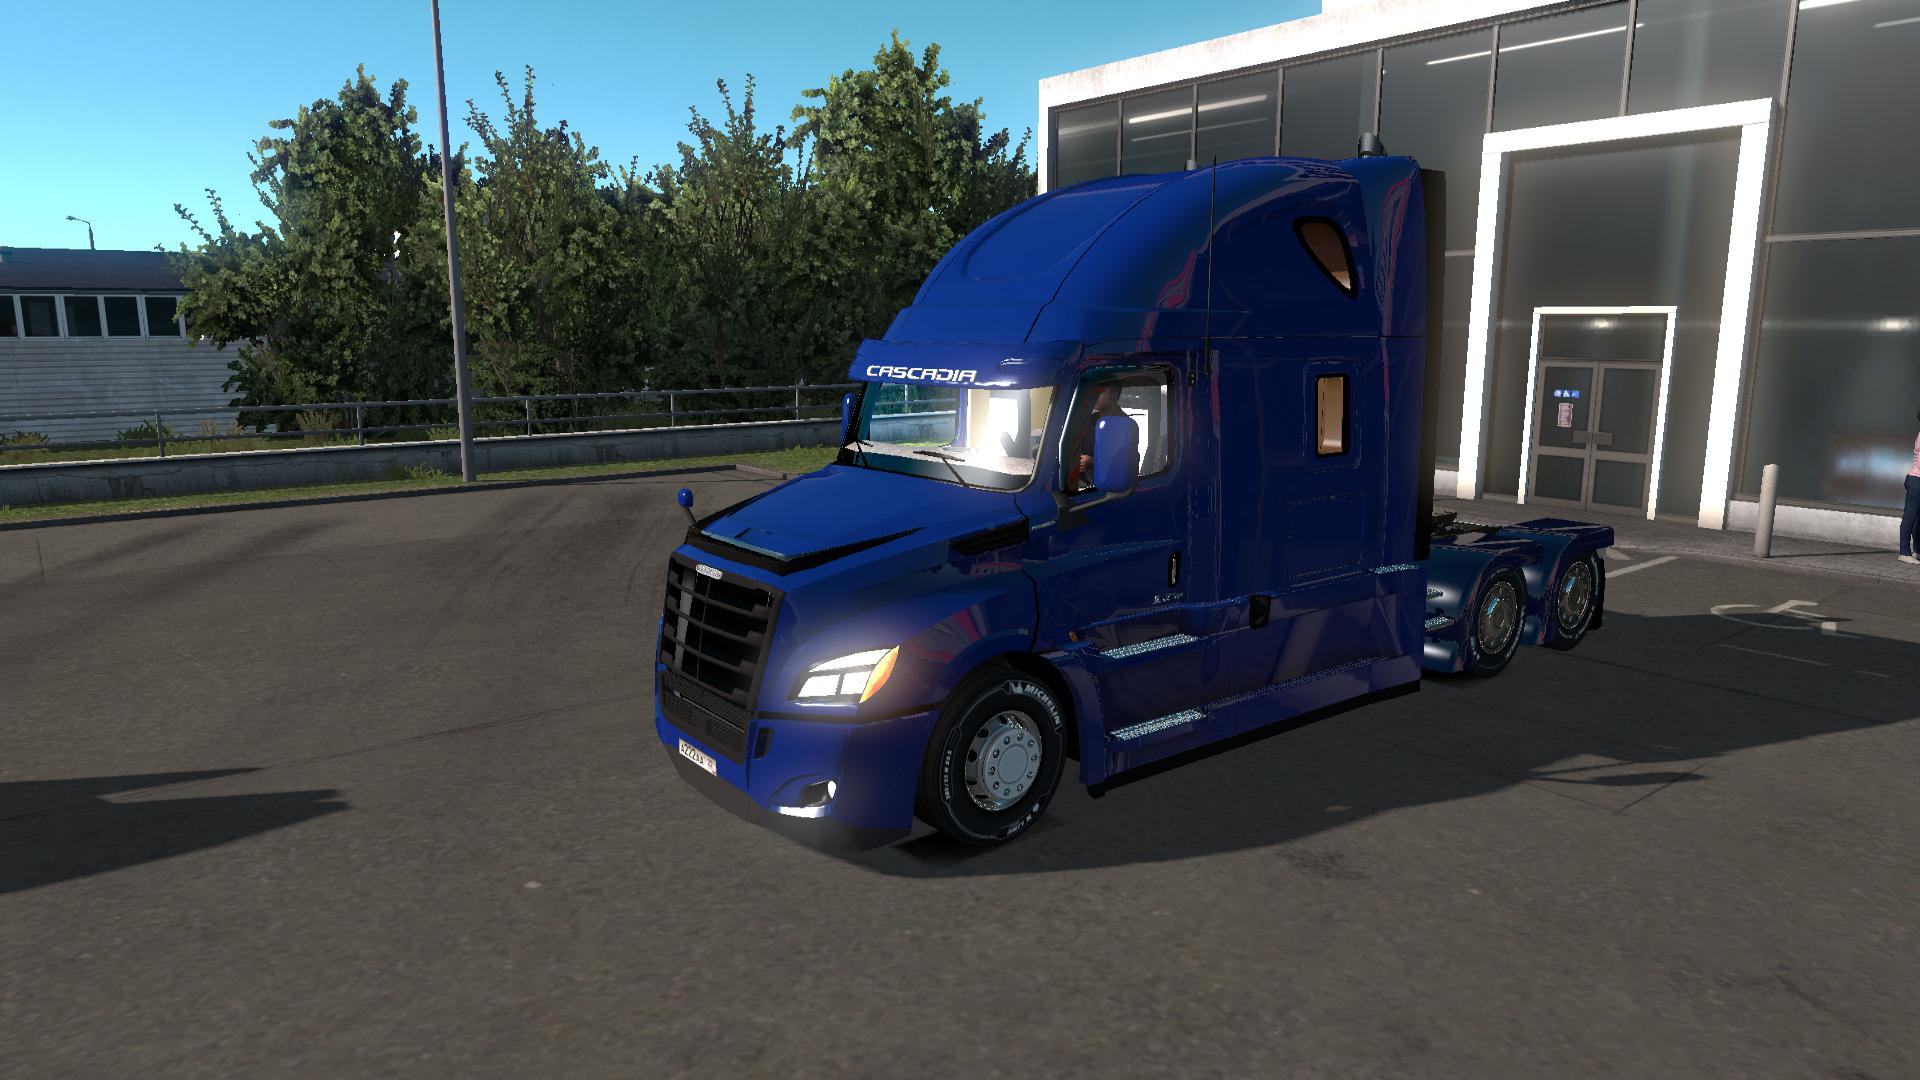 NEW FREIGHTLINER CASCADIA 2018 1 34 TRUCK -Euro Truck Simulator 2 Mods